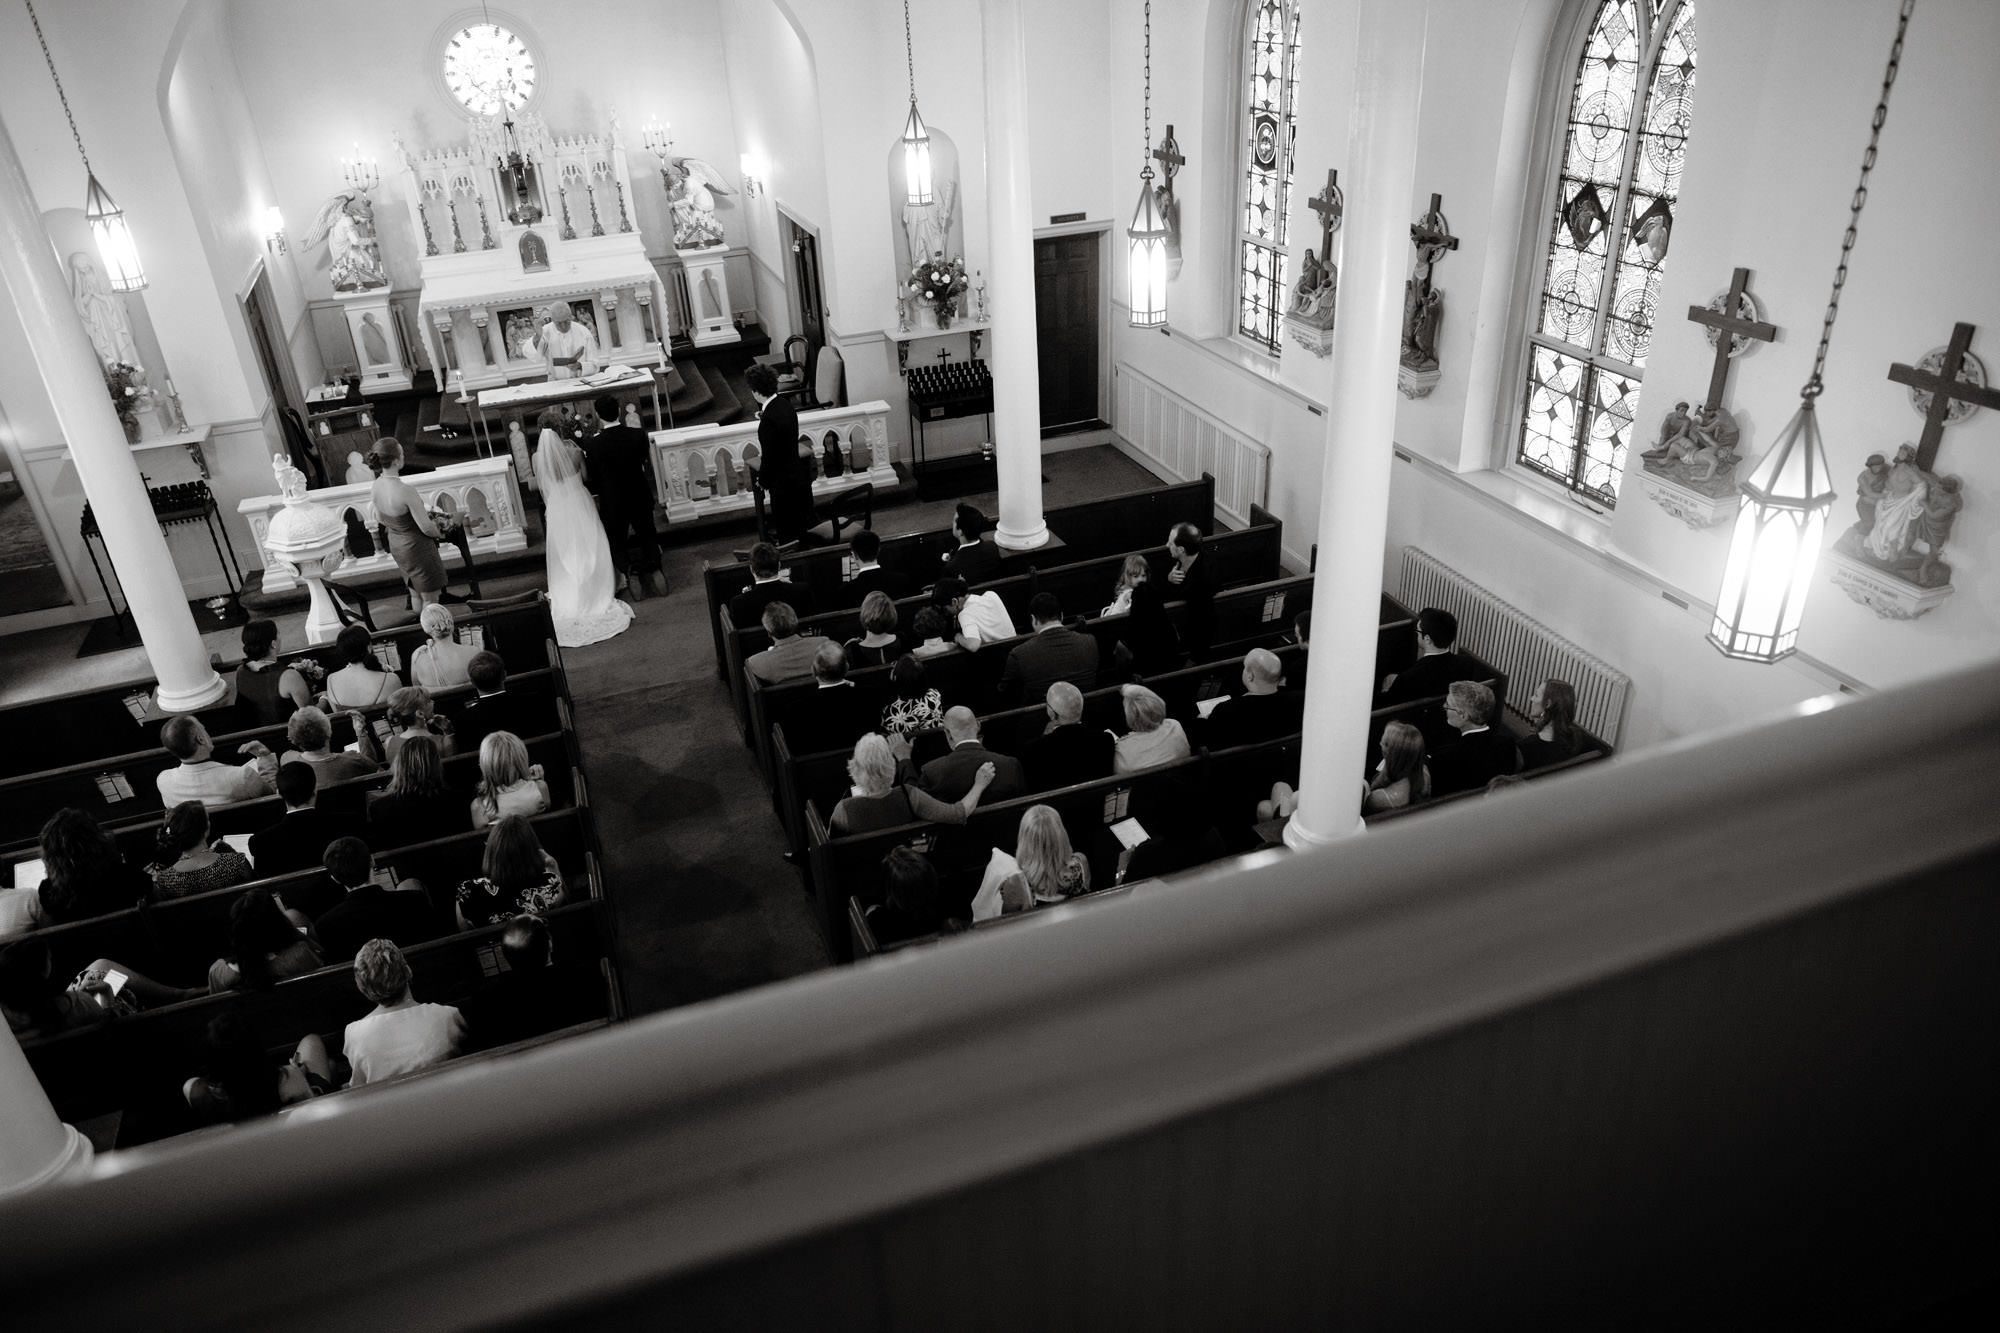 The wedding ceremony from the balcony of St. Mary's Catholic Church in Rockville, MD.